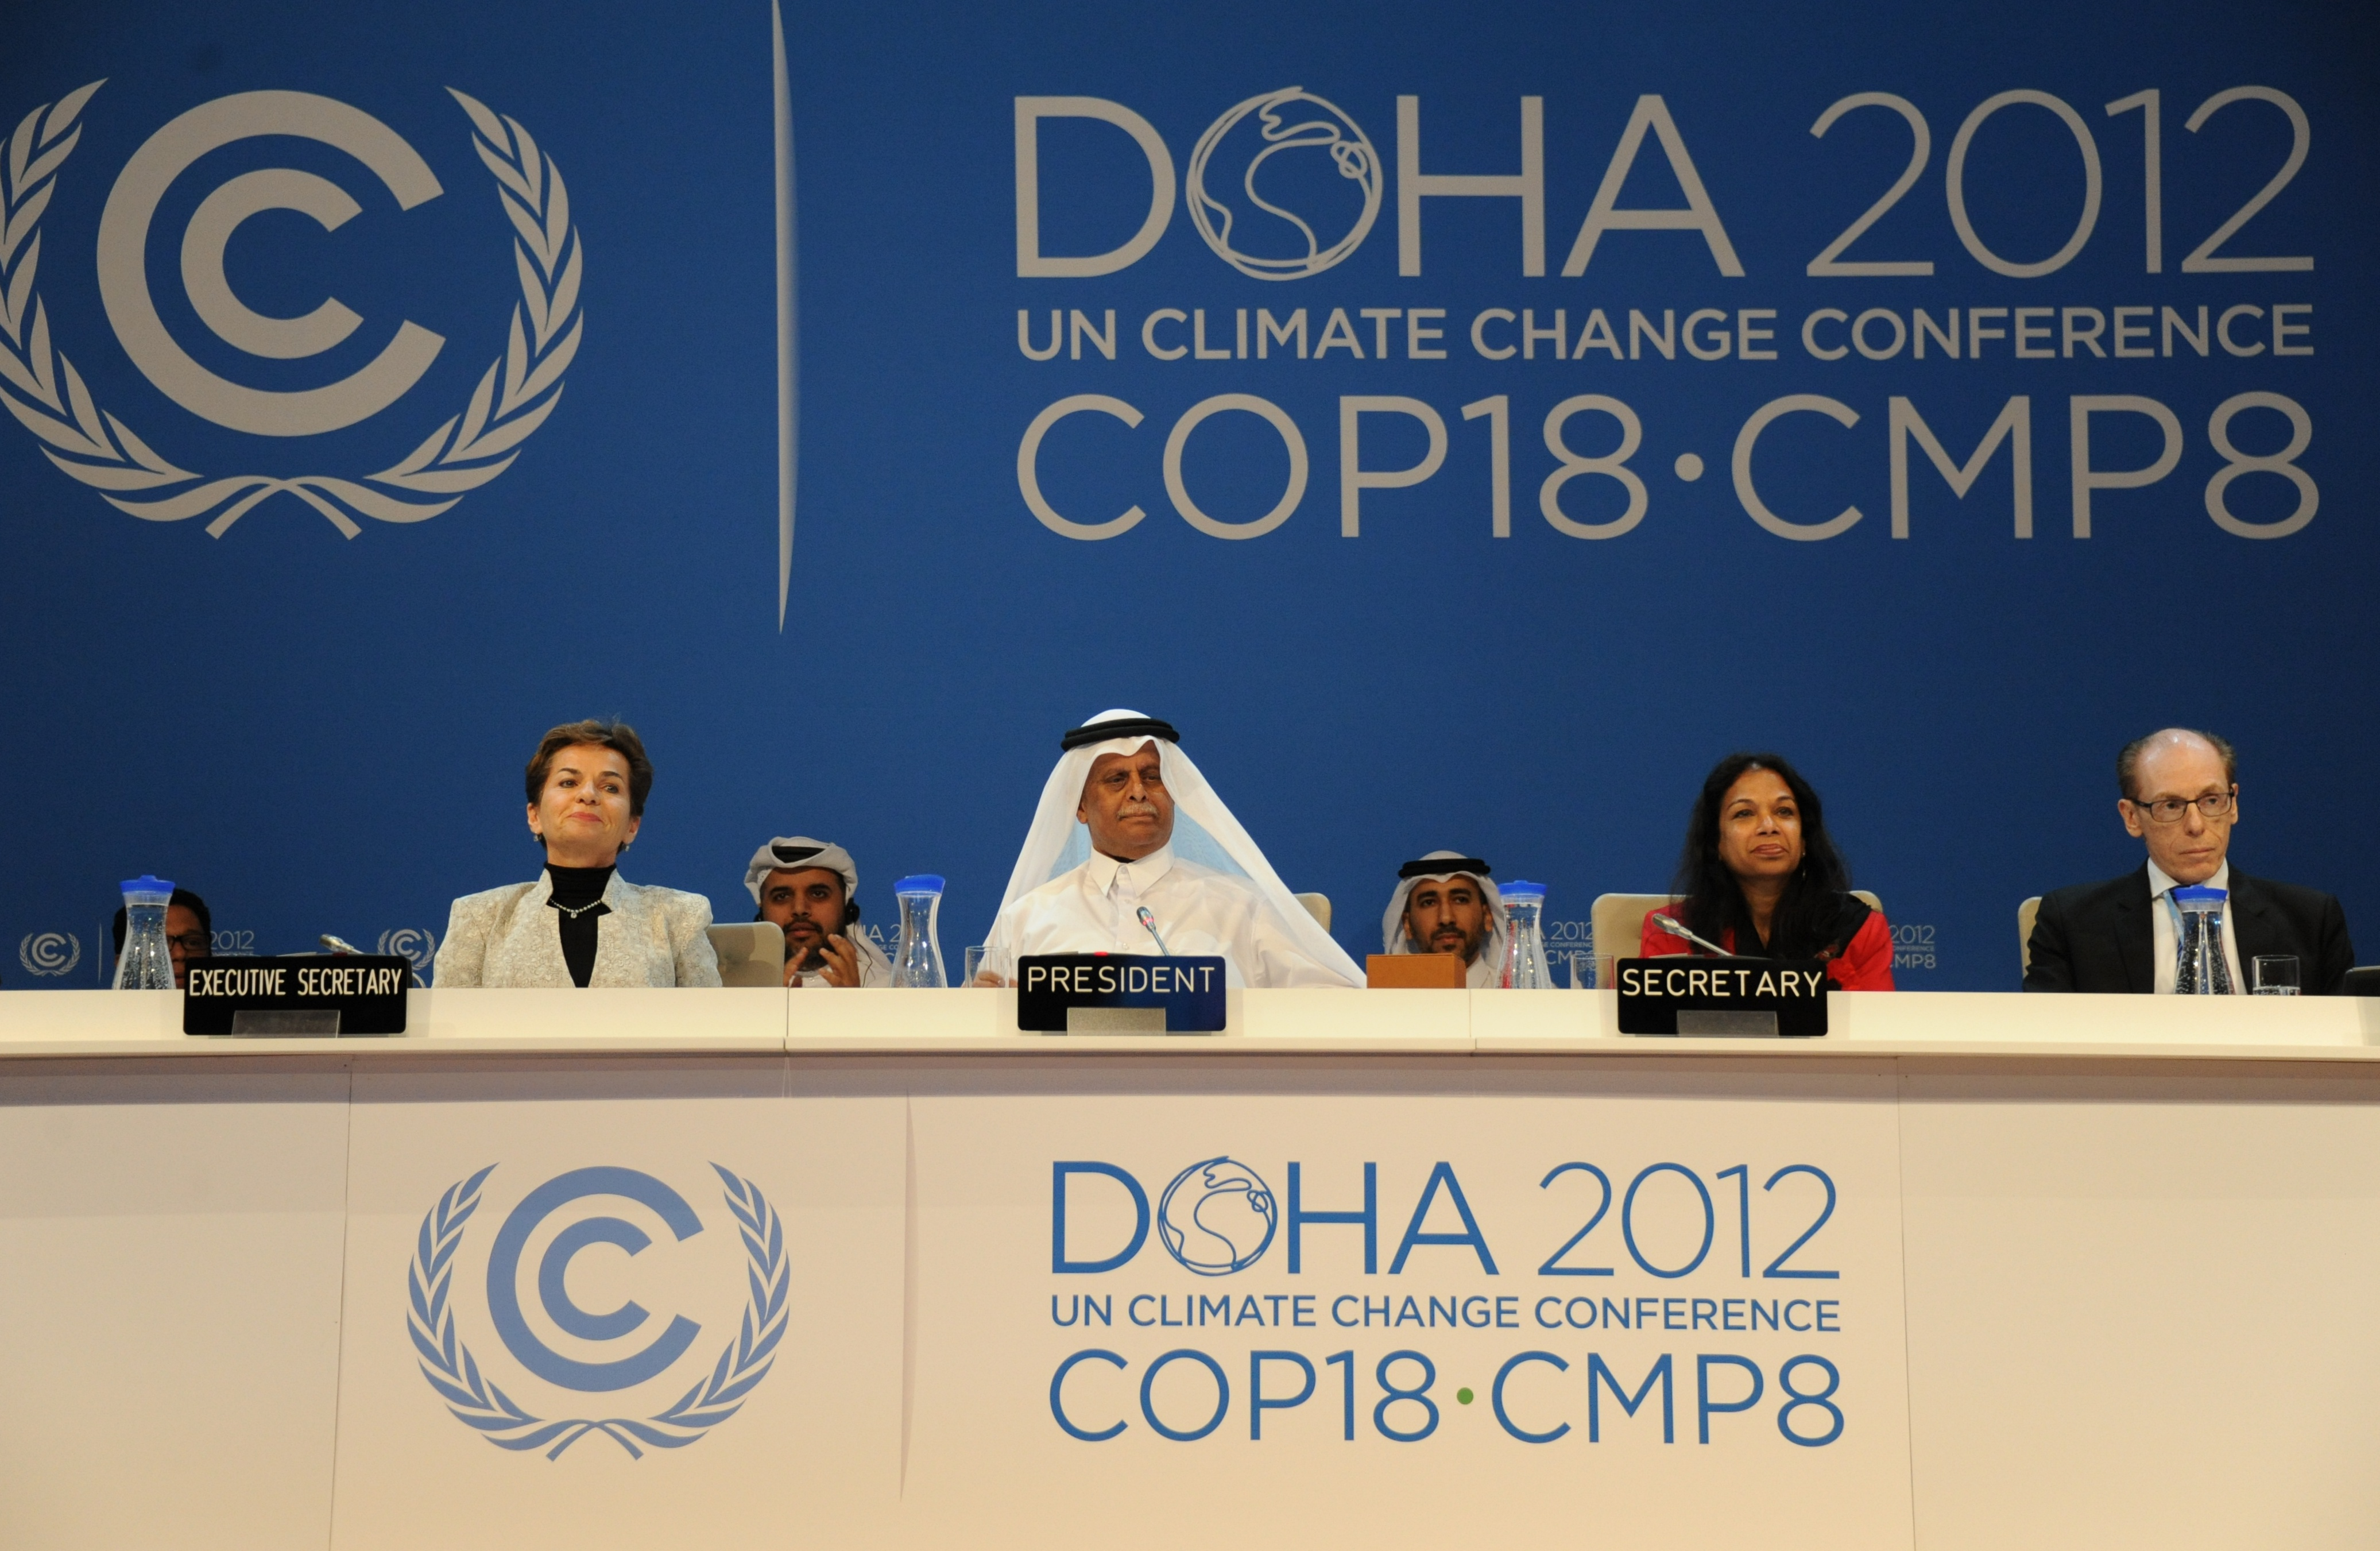 doha climate change negotiations Climate change conference in doha 2012: short-term solution and long-term outlook after much contention, the un climate negotiations in 2012 in doha (qatar.